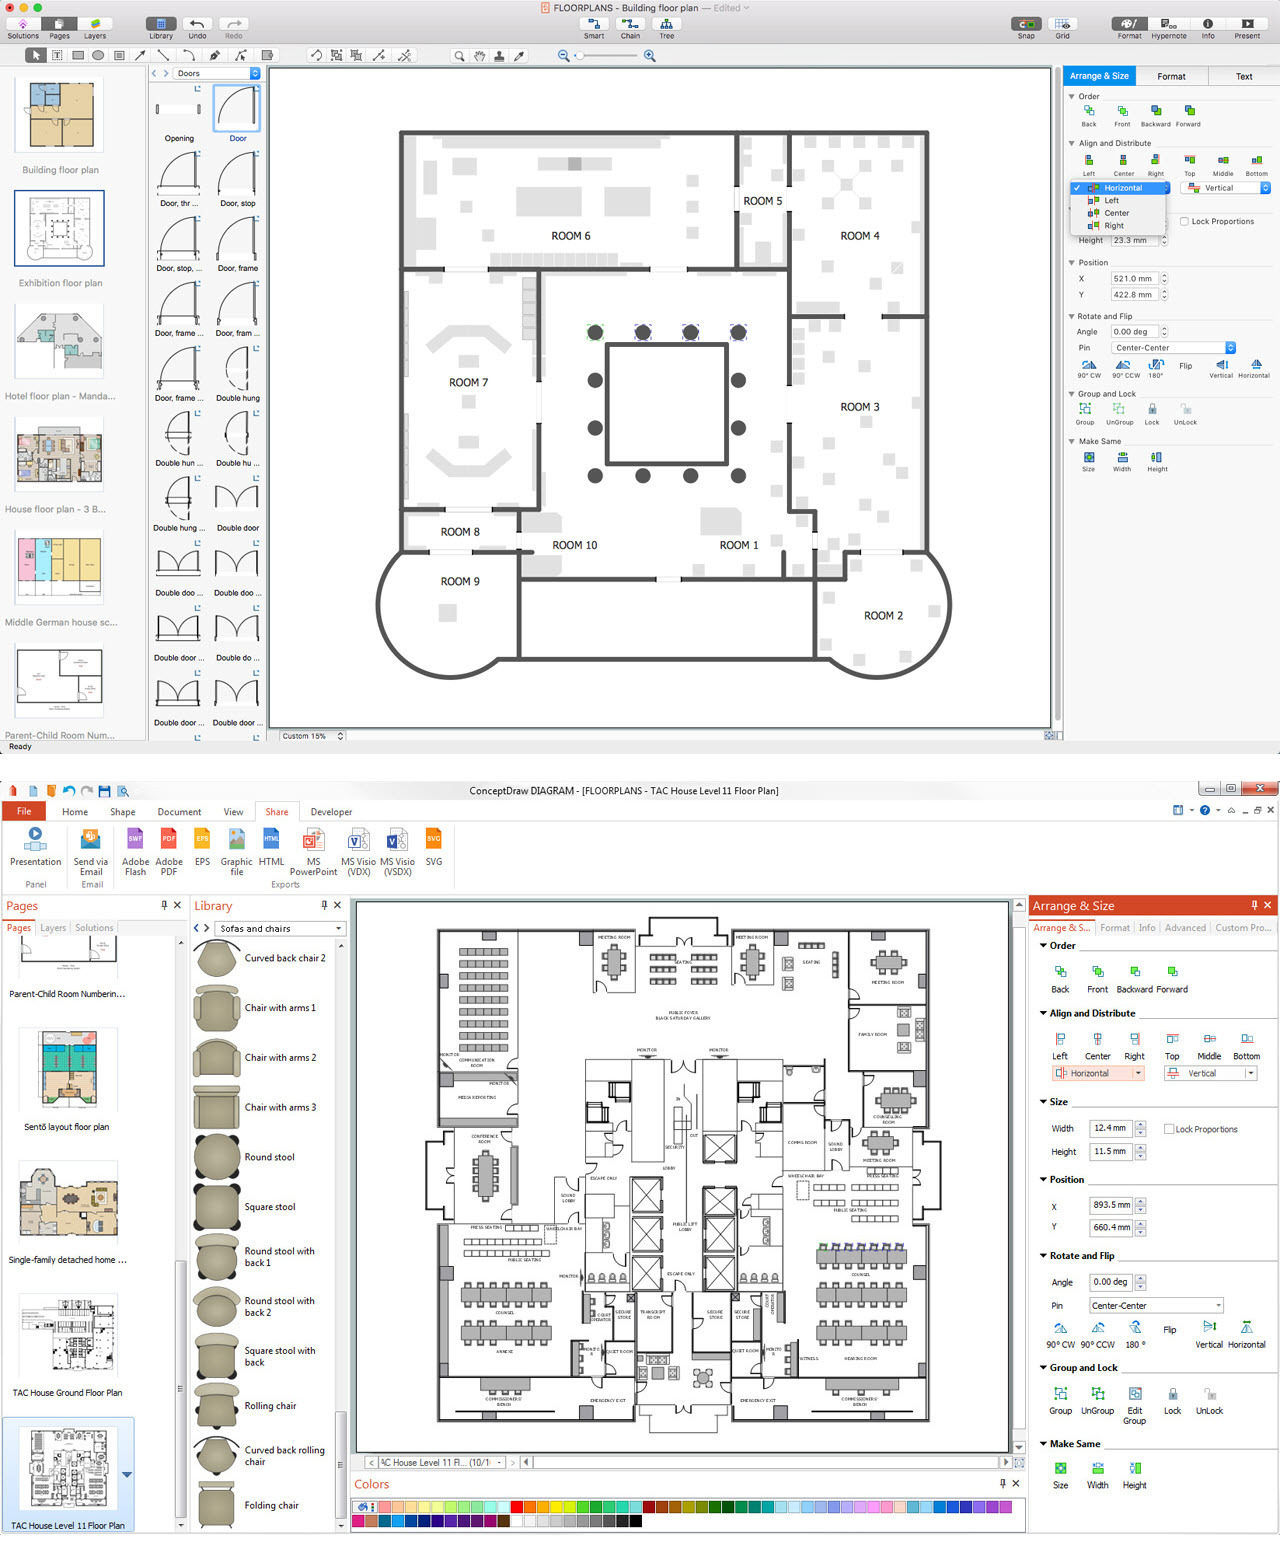 Drafting House Plans software Free New Cad Drawing software for Architectural Designs